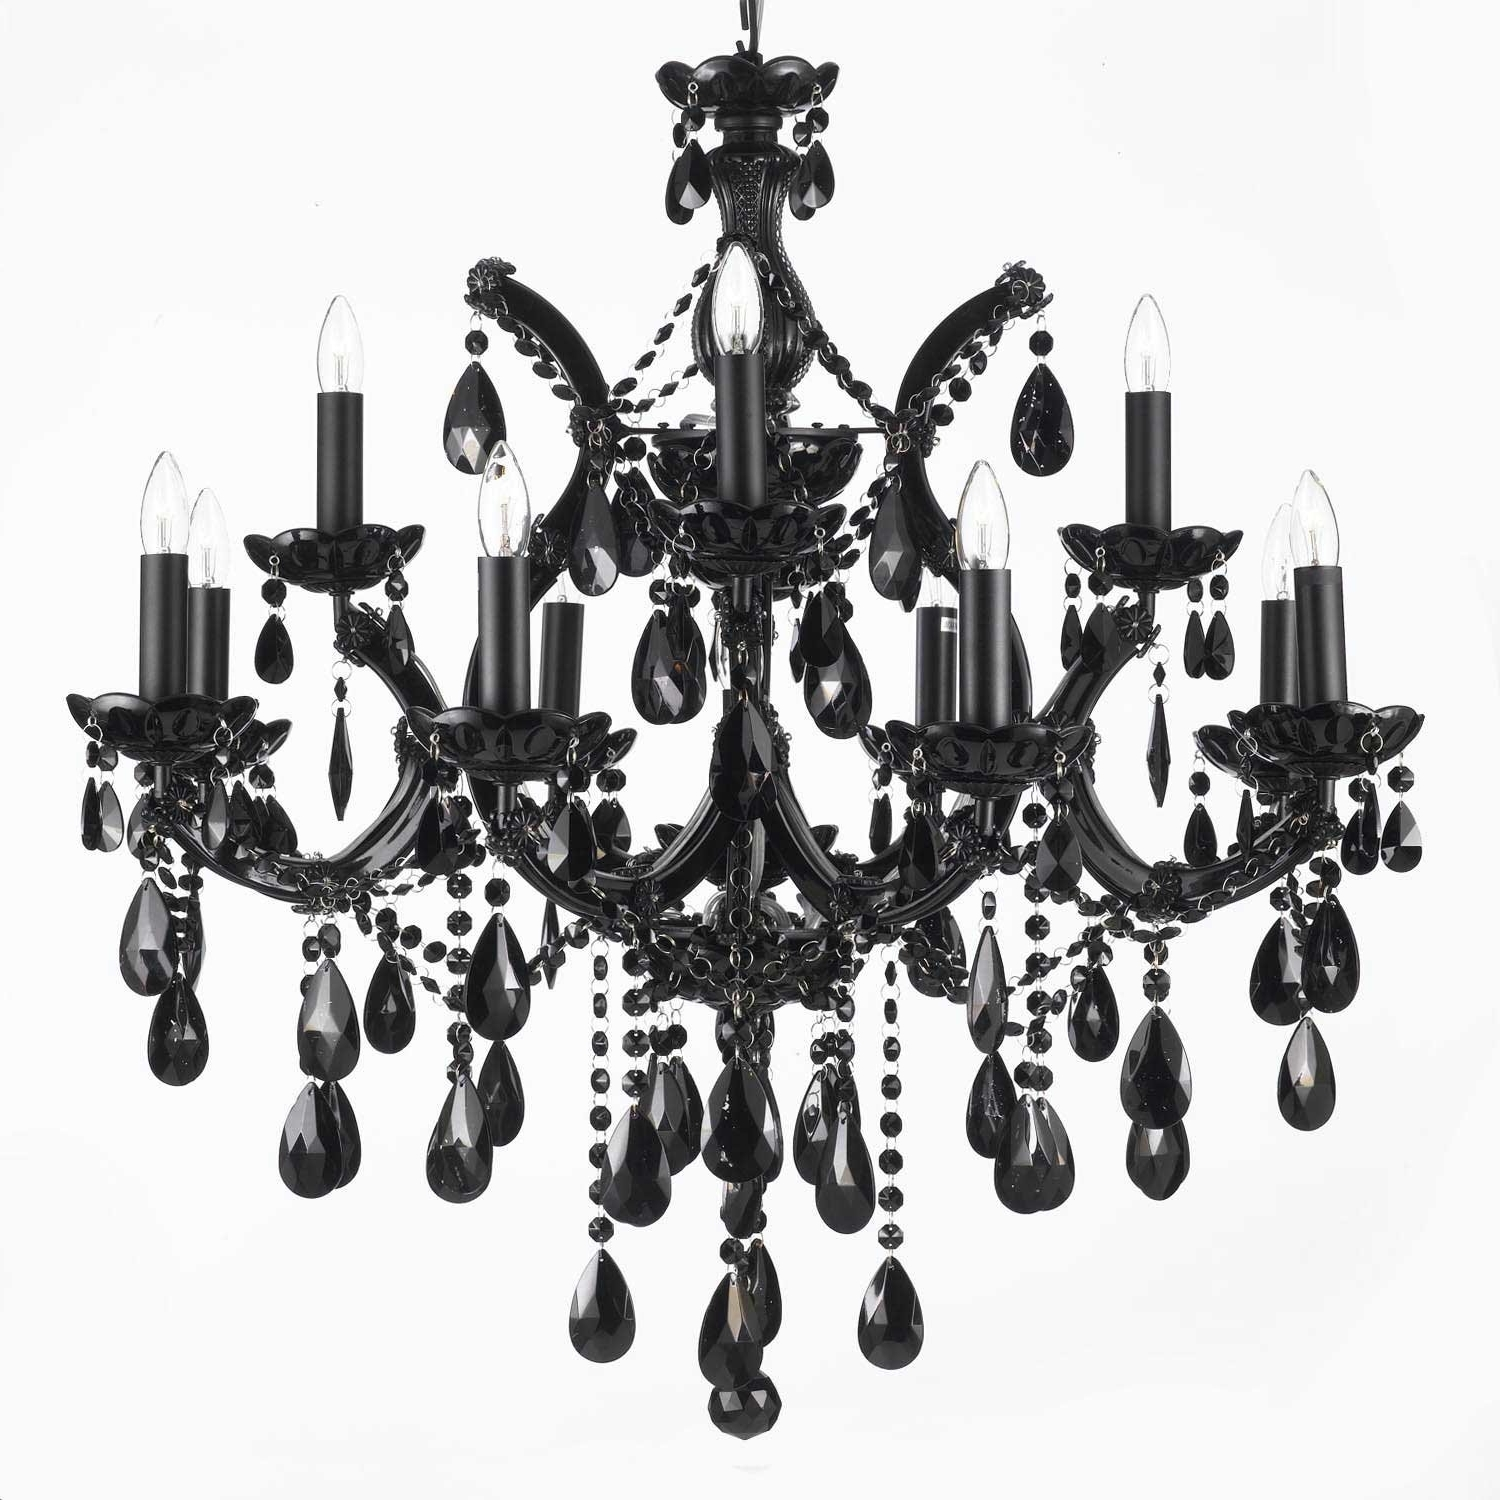 2018 Jet Black Chandelier Crystal Lighting 30X28 – – Amazon Pertaining To Black Chandeliers (View 7 of 15)